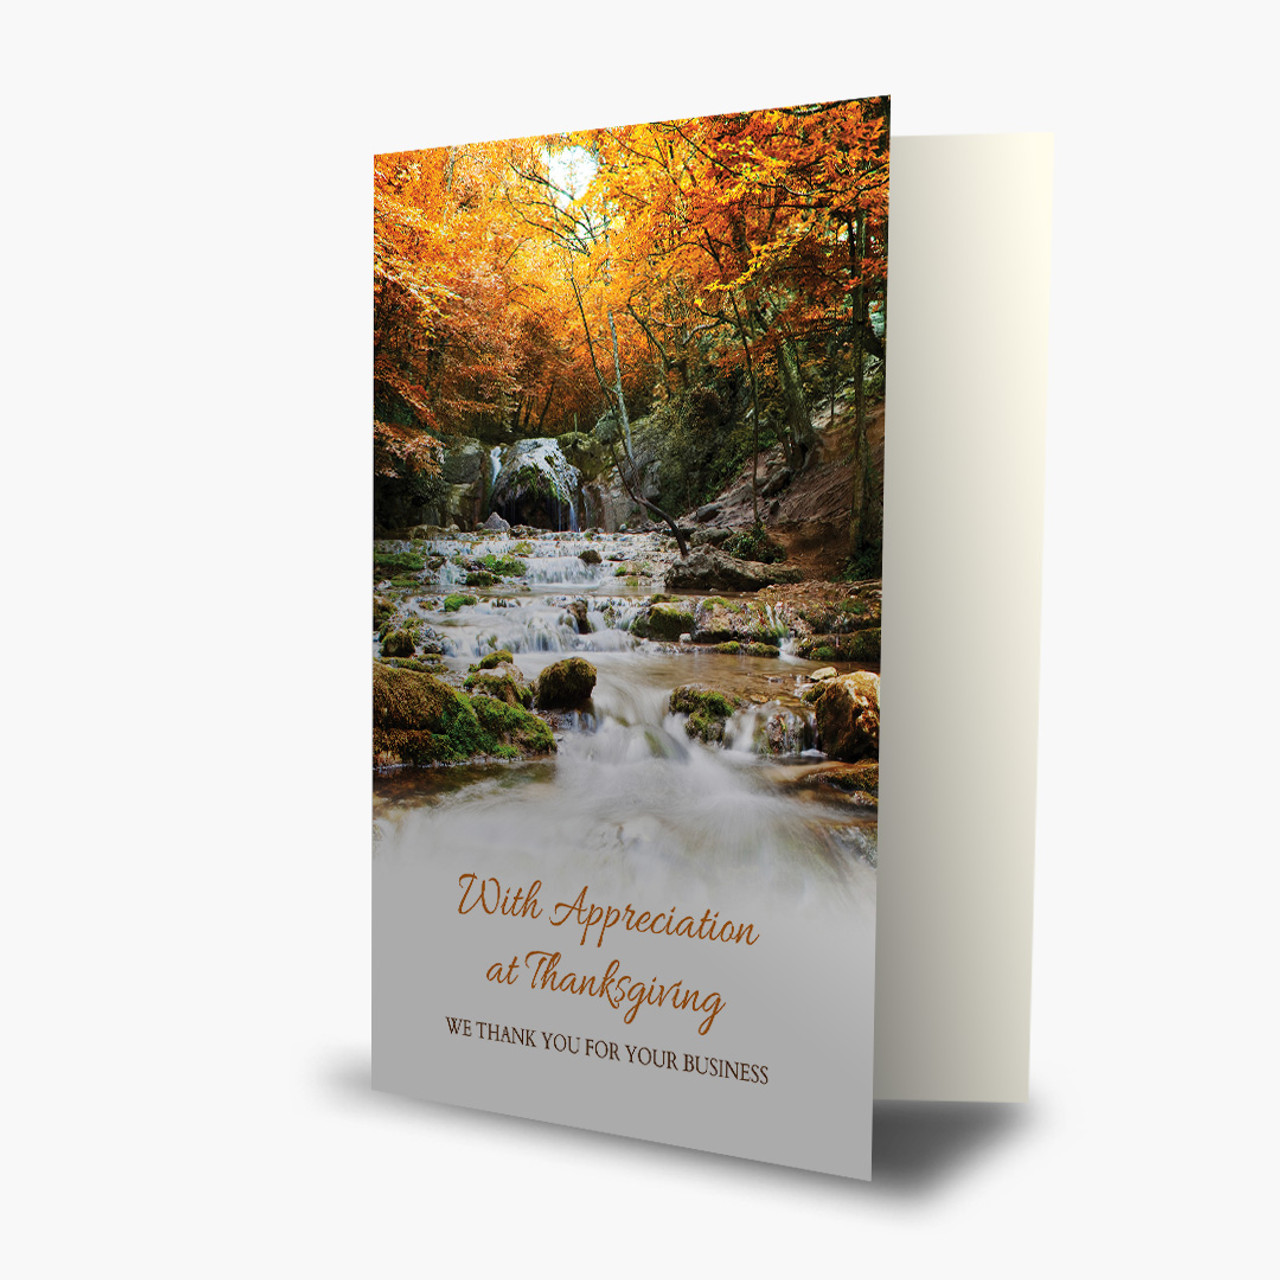 Appreciation Waterfall Thanksgiving Card